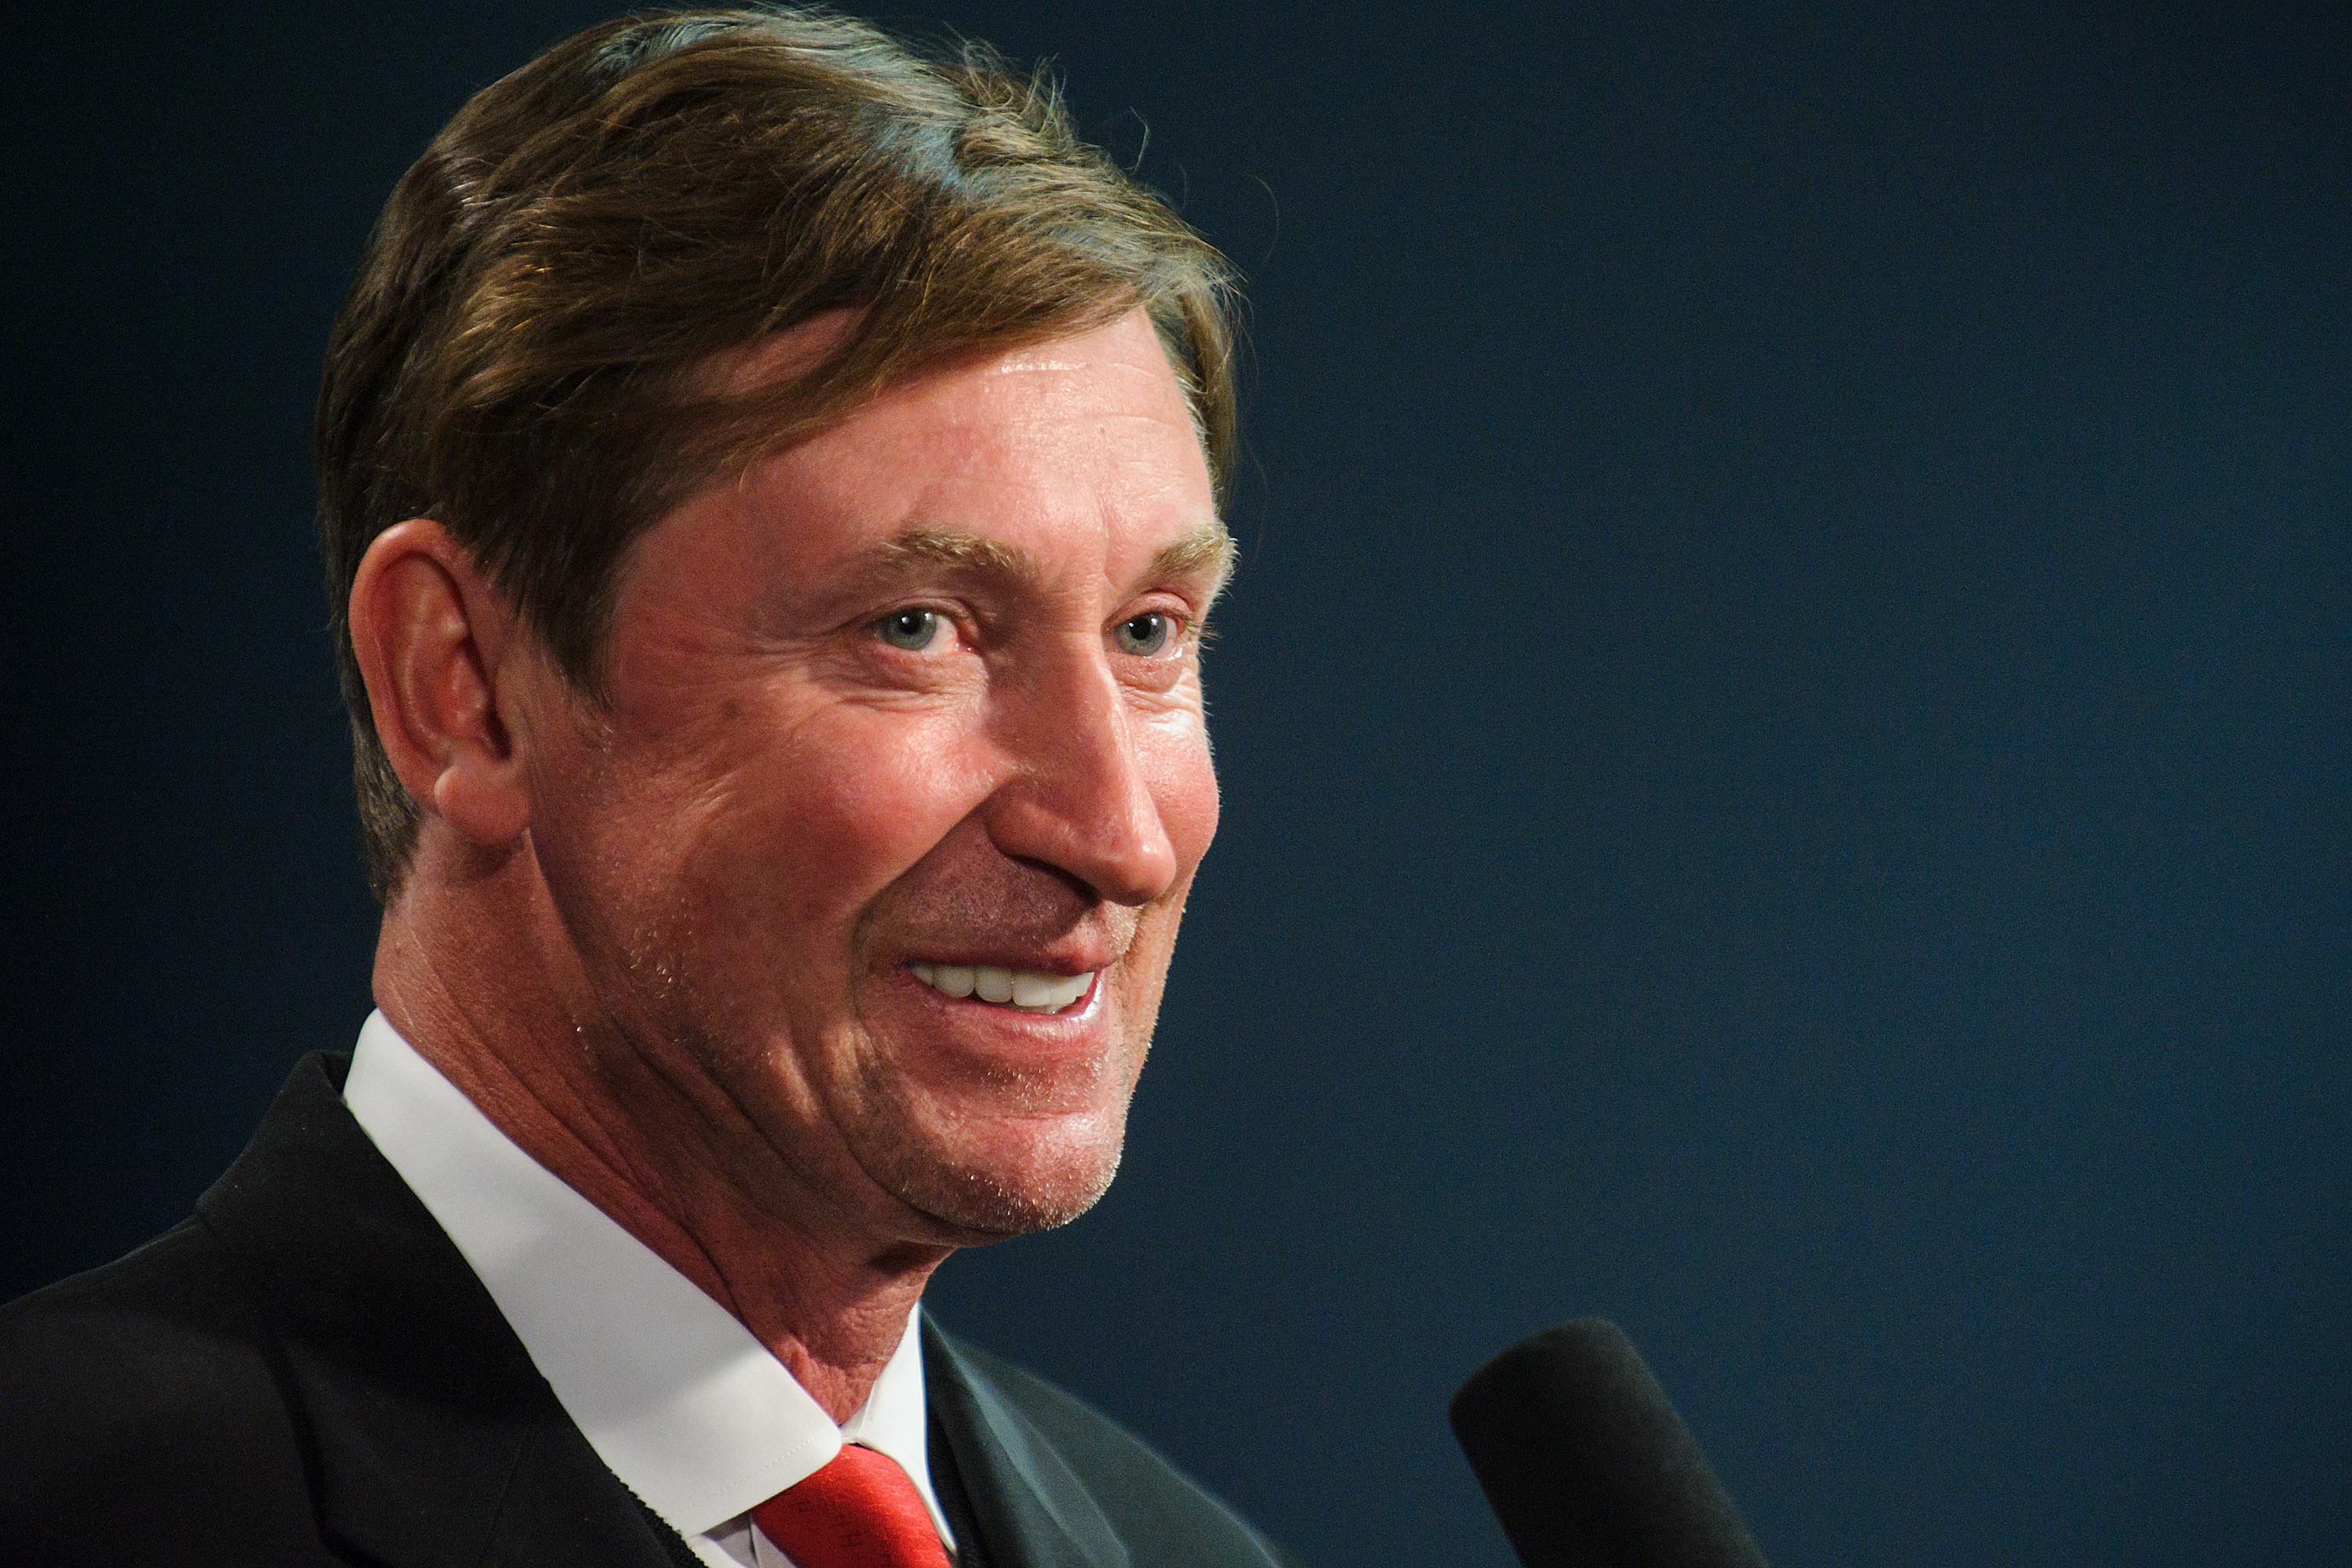 The NHL rejected a plan in 2011 from Wayne Gretzky and other investors who had attempted to make a $1.5 billion purchase of the Toronto Maple Leafs.